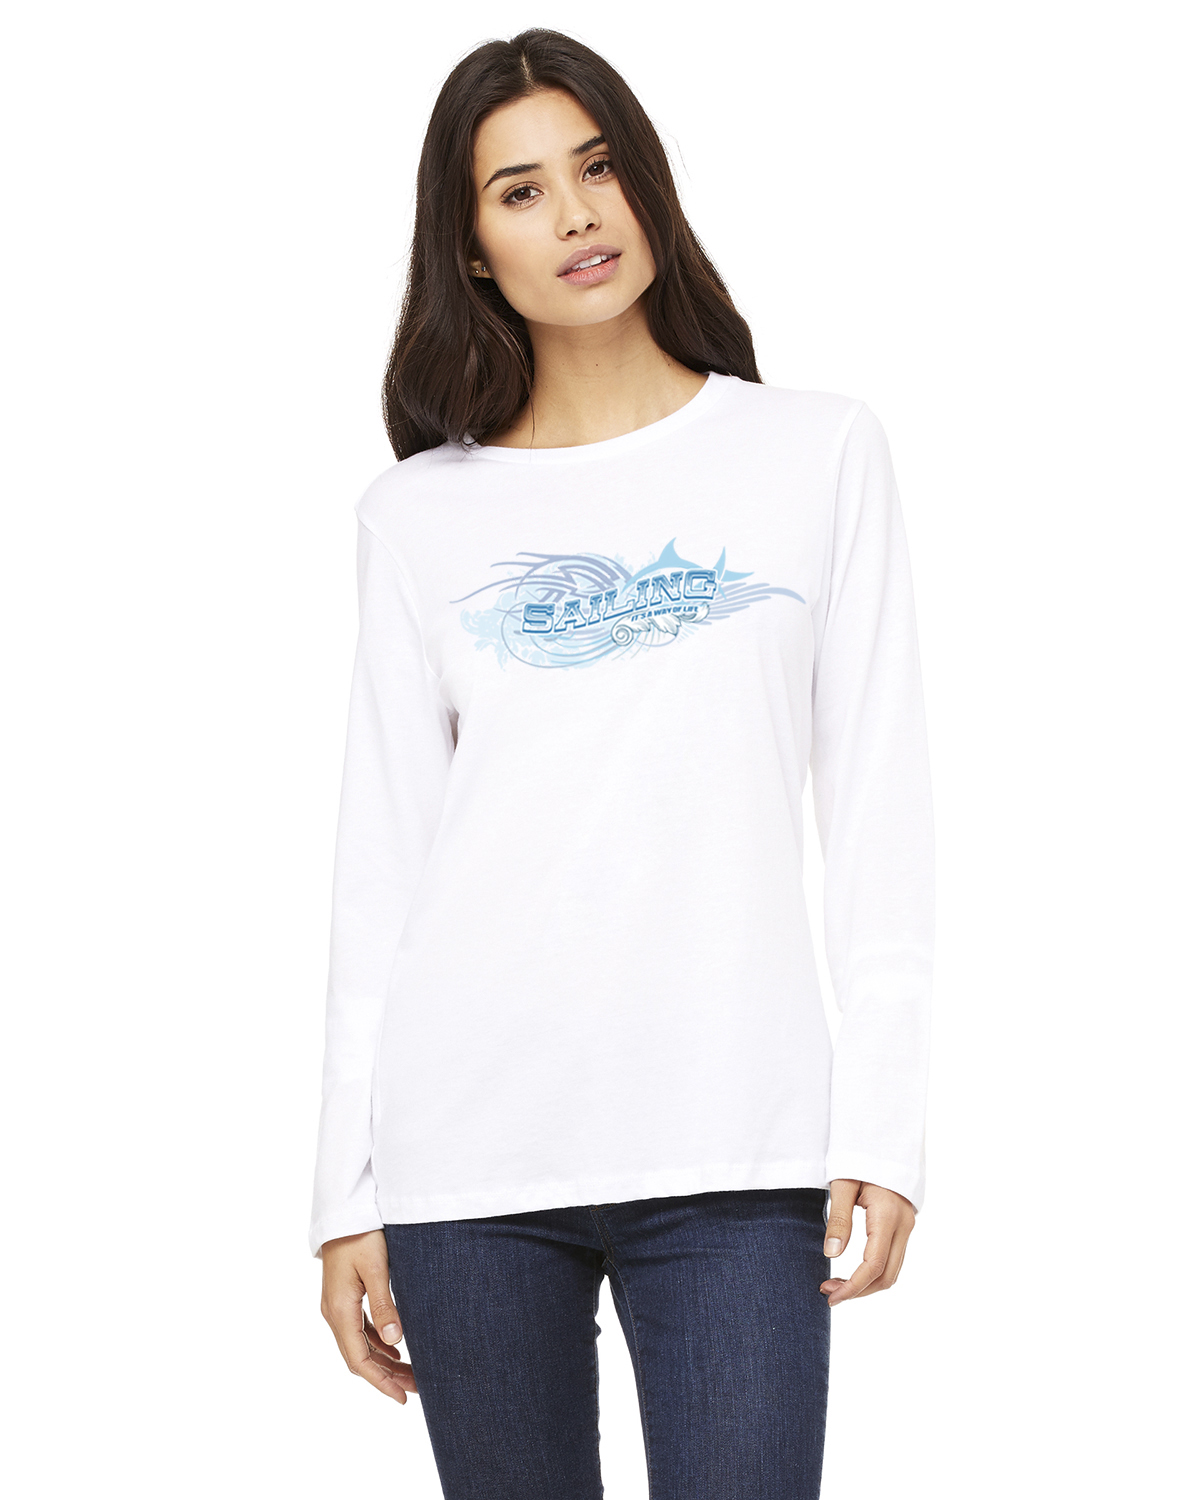 Women's Long Sleeve Sailing ' its a way of Life T-Shirt (White)